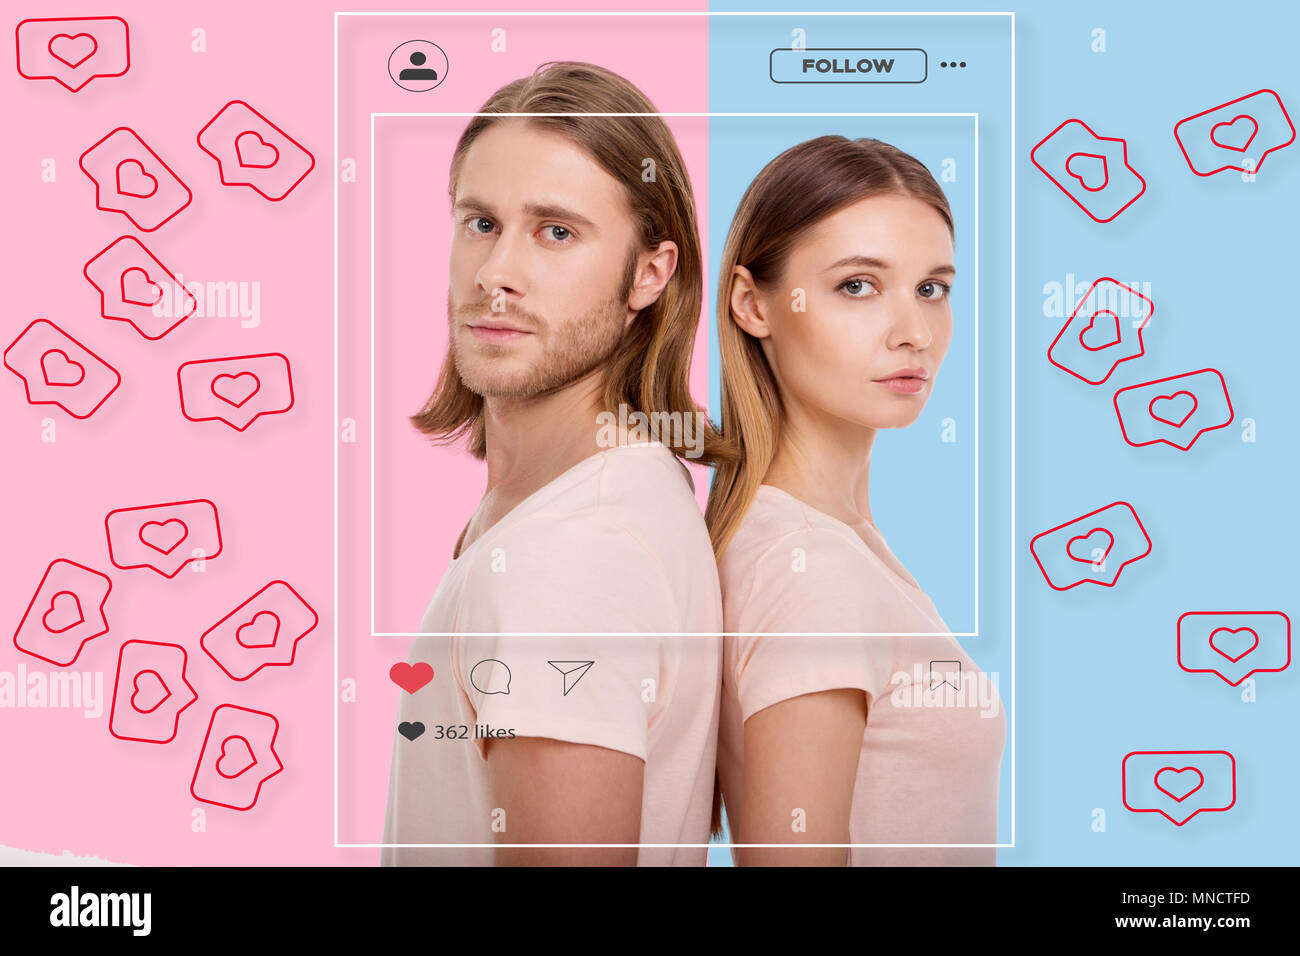 Portrait of charming couple waiting for likes in social network Stock Photo